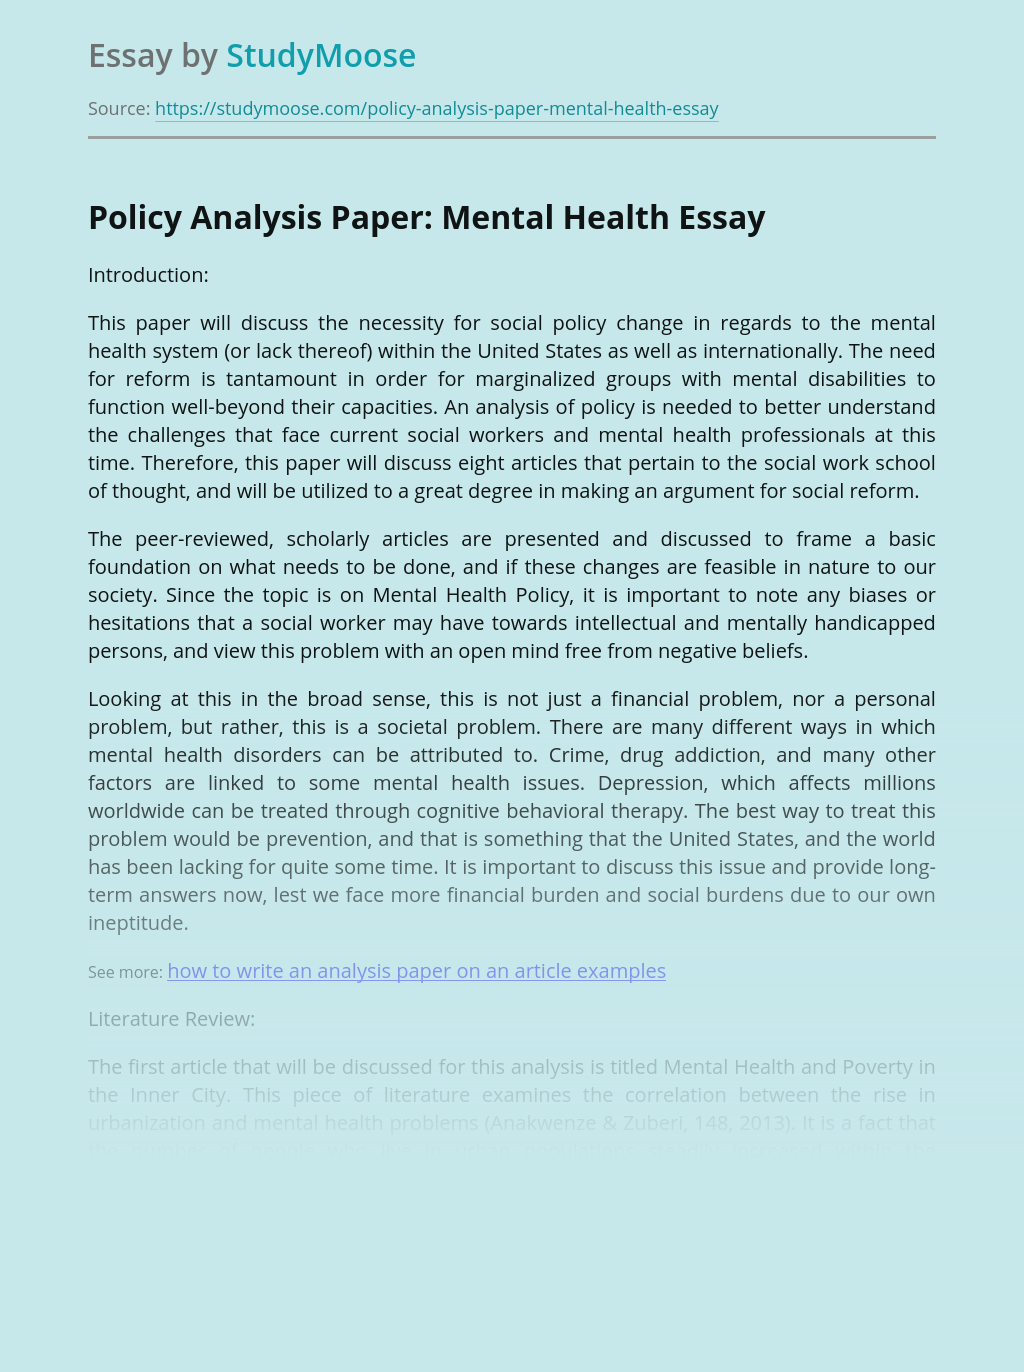 Policy Analysis Paper: Mental Health